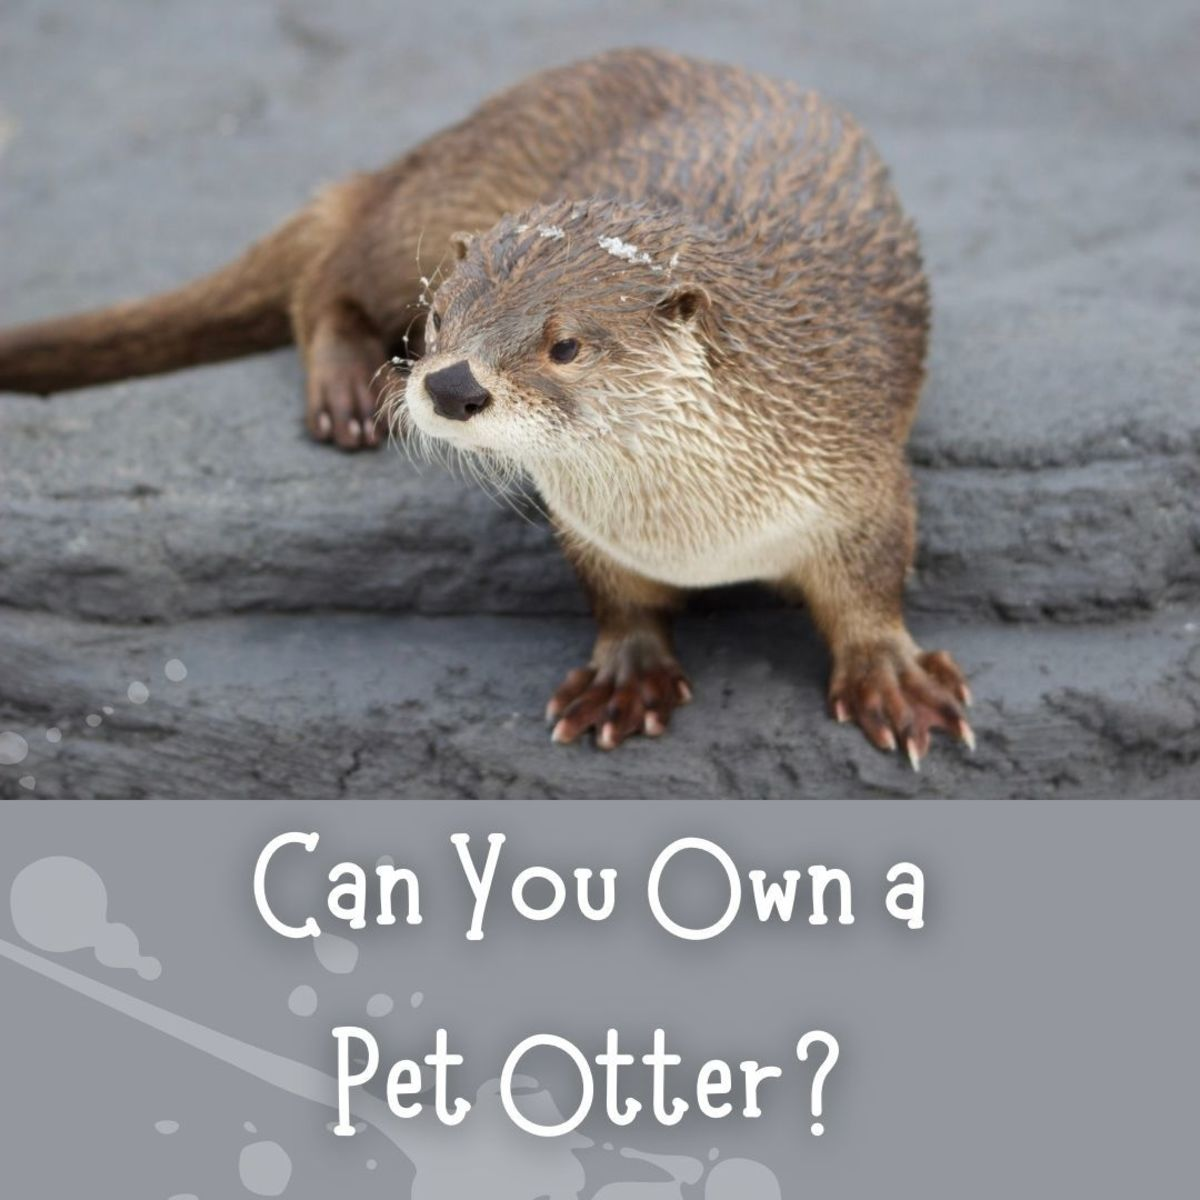 Otters can be legally obtained for private ownership.